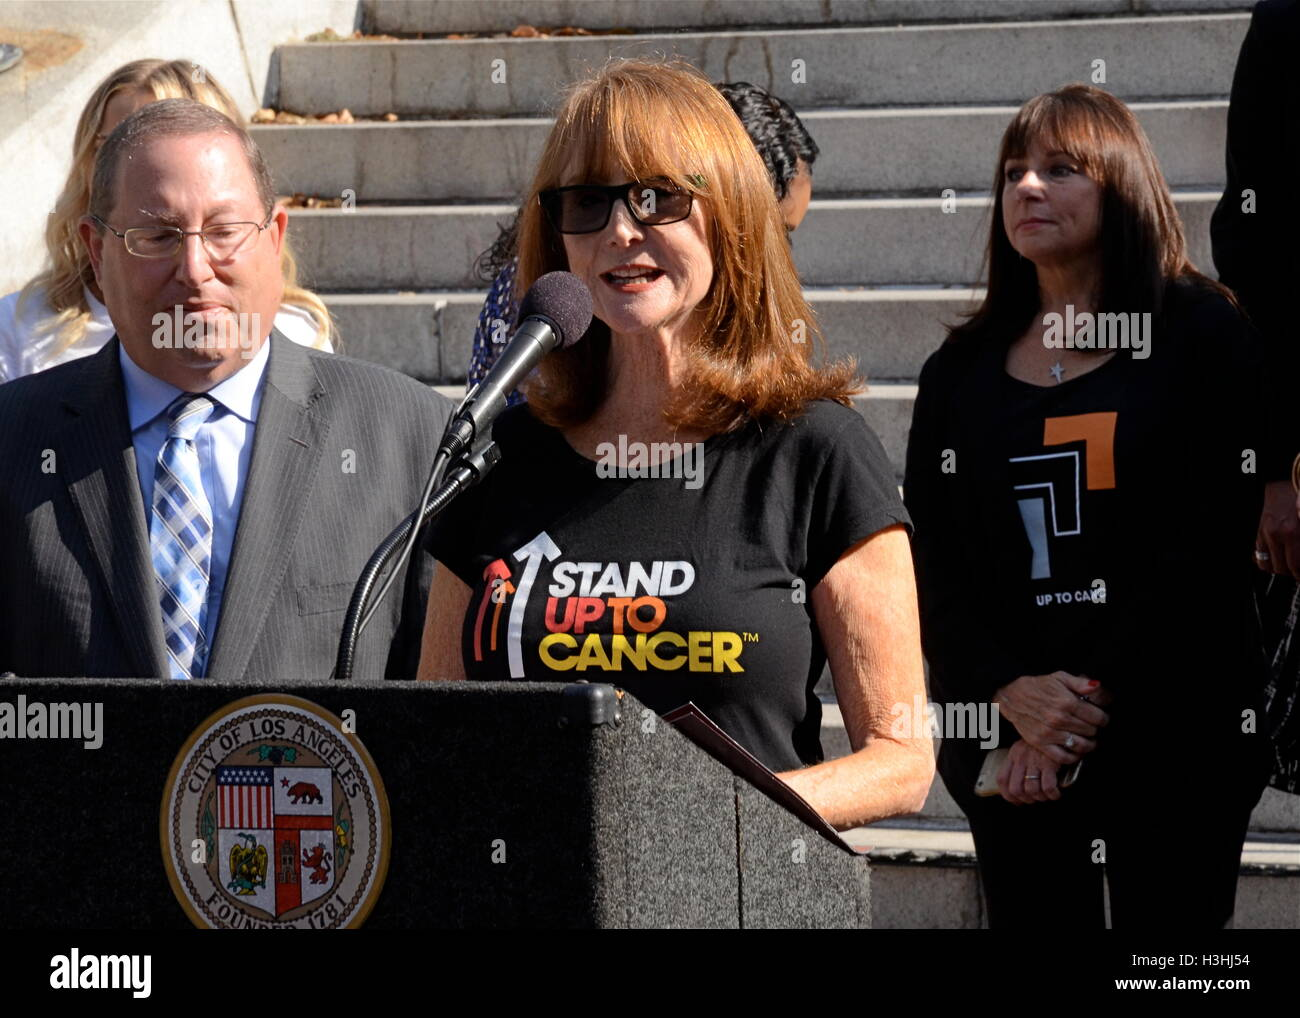 Paul Koretz and Marg Helgenberger attends Press Conference For 'Stand Up To Cancer Day' at Los Angeles City - Stock Image